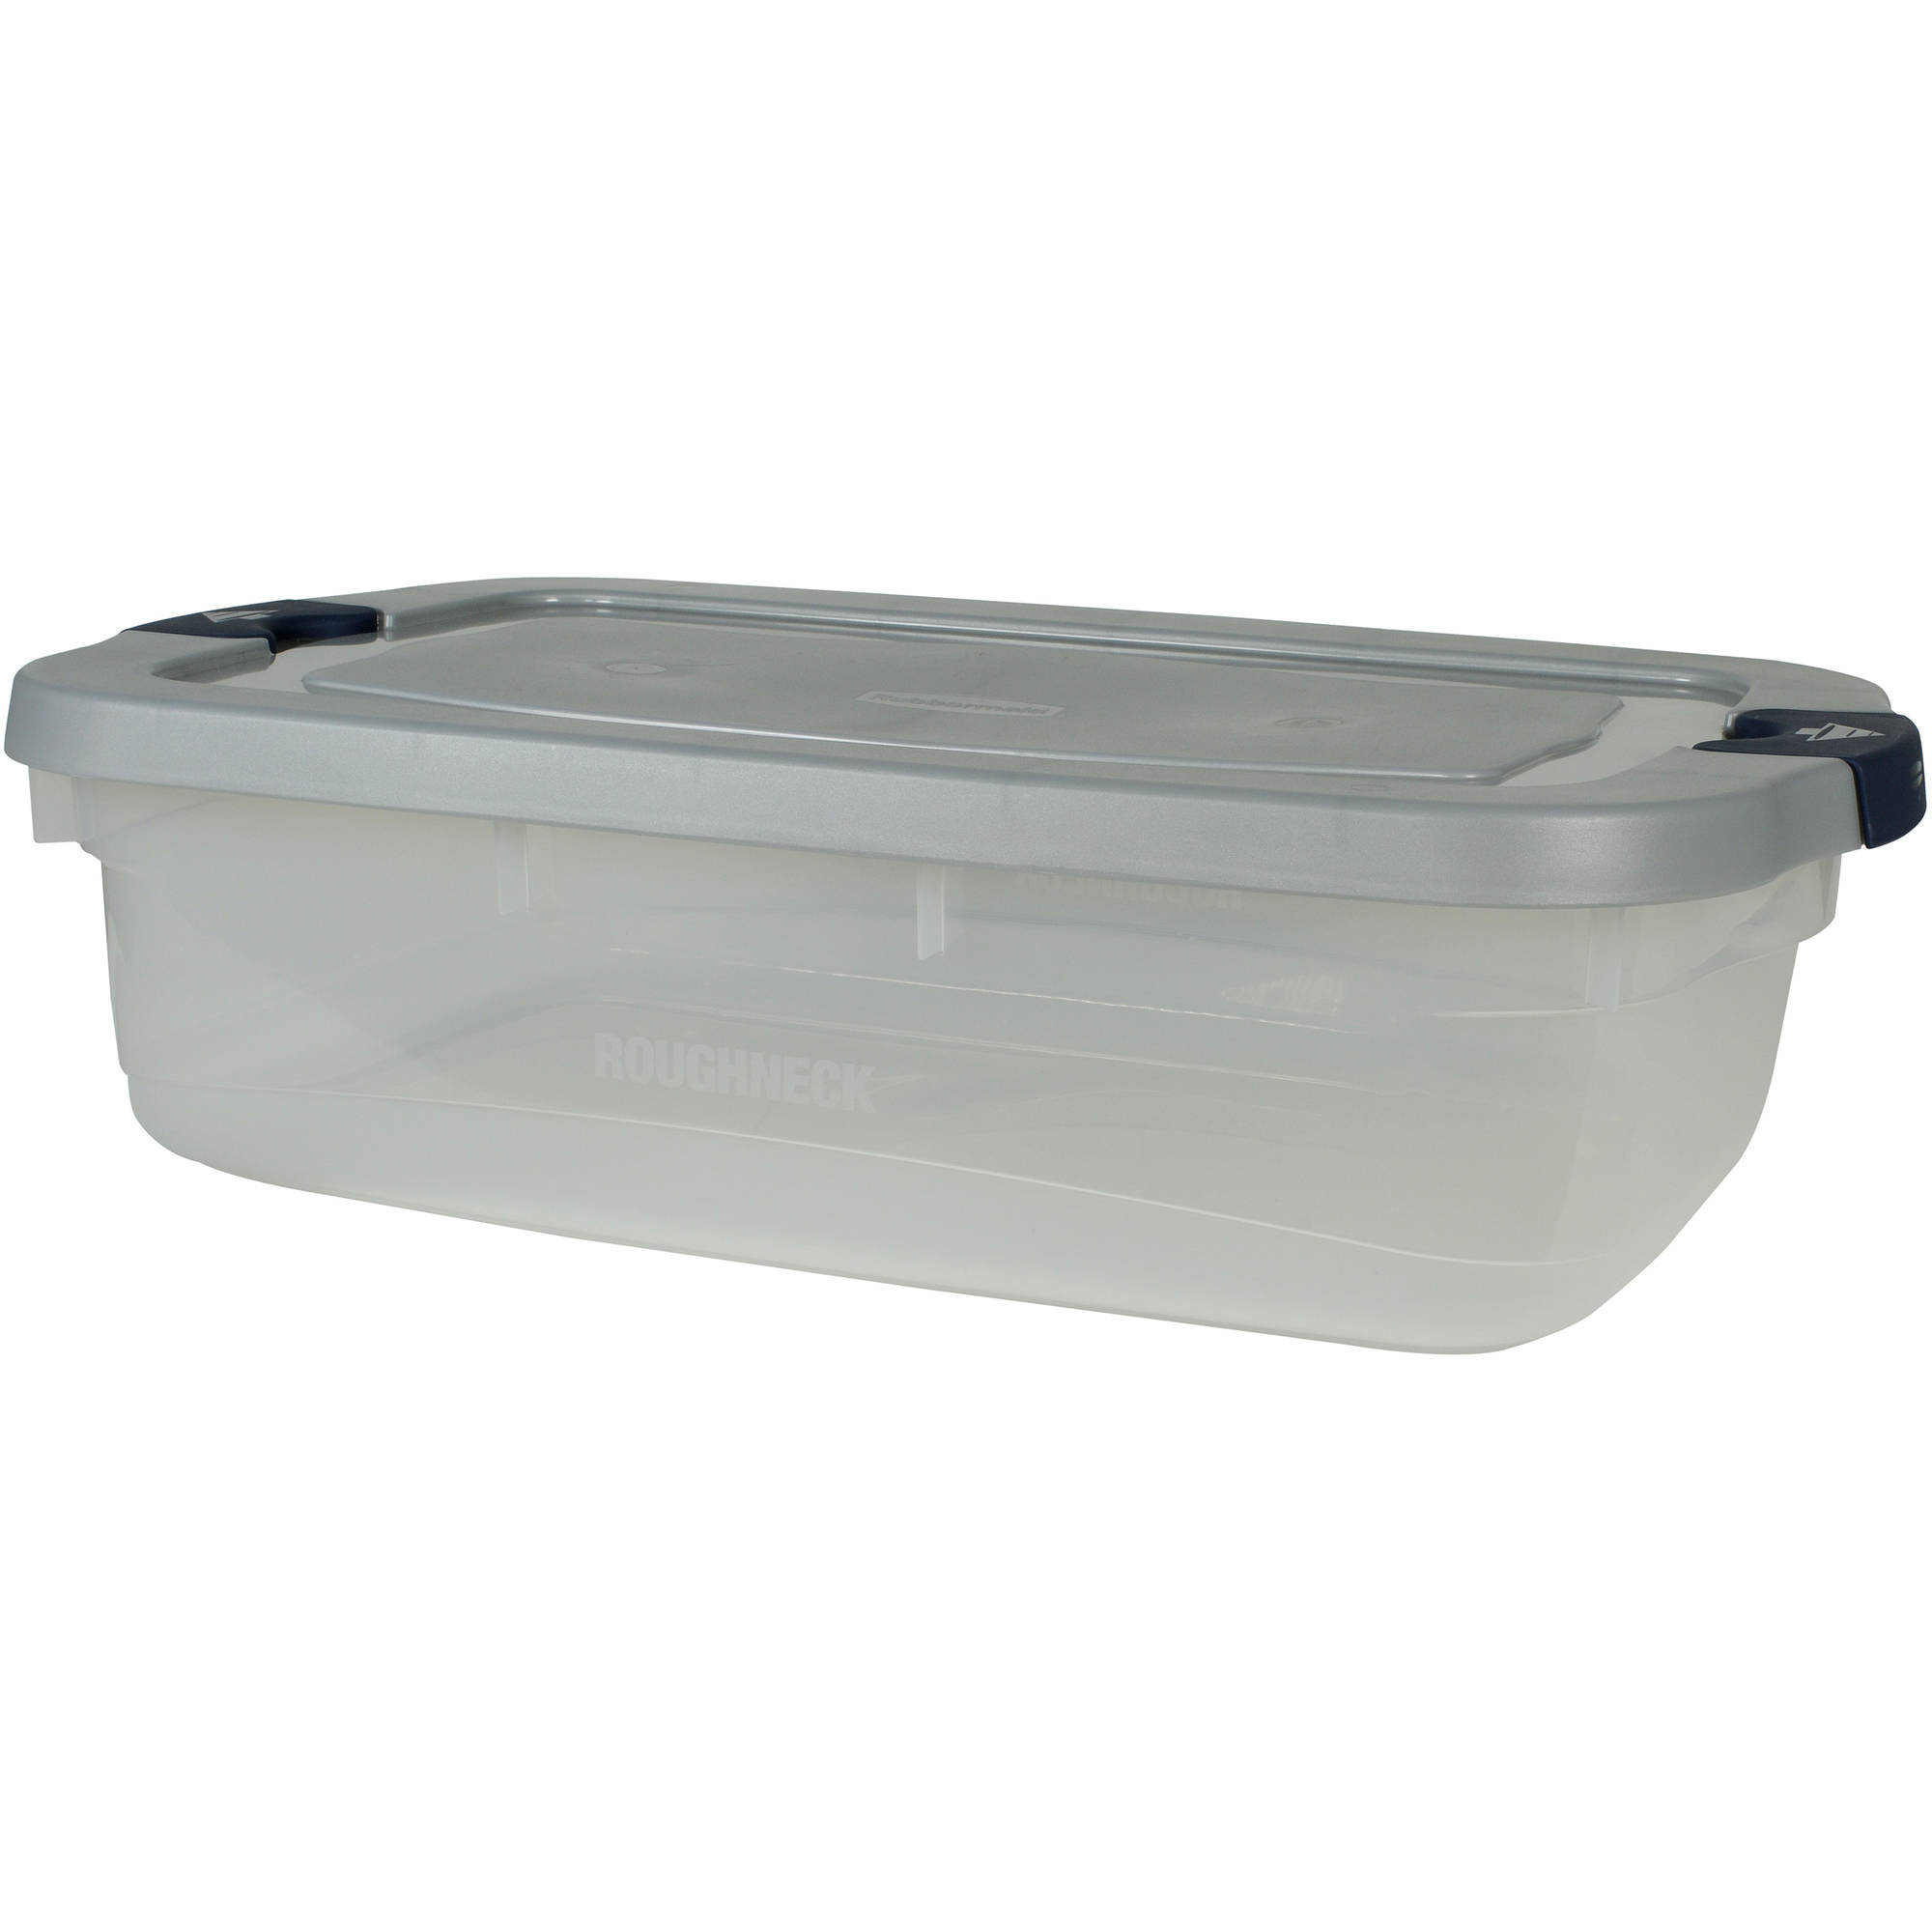 Rubbermaid Roughneck Clears Storage Tote Bins, 31 Qt (7.75 Gal), Clear with Gray Lid, Set of 6